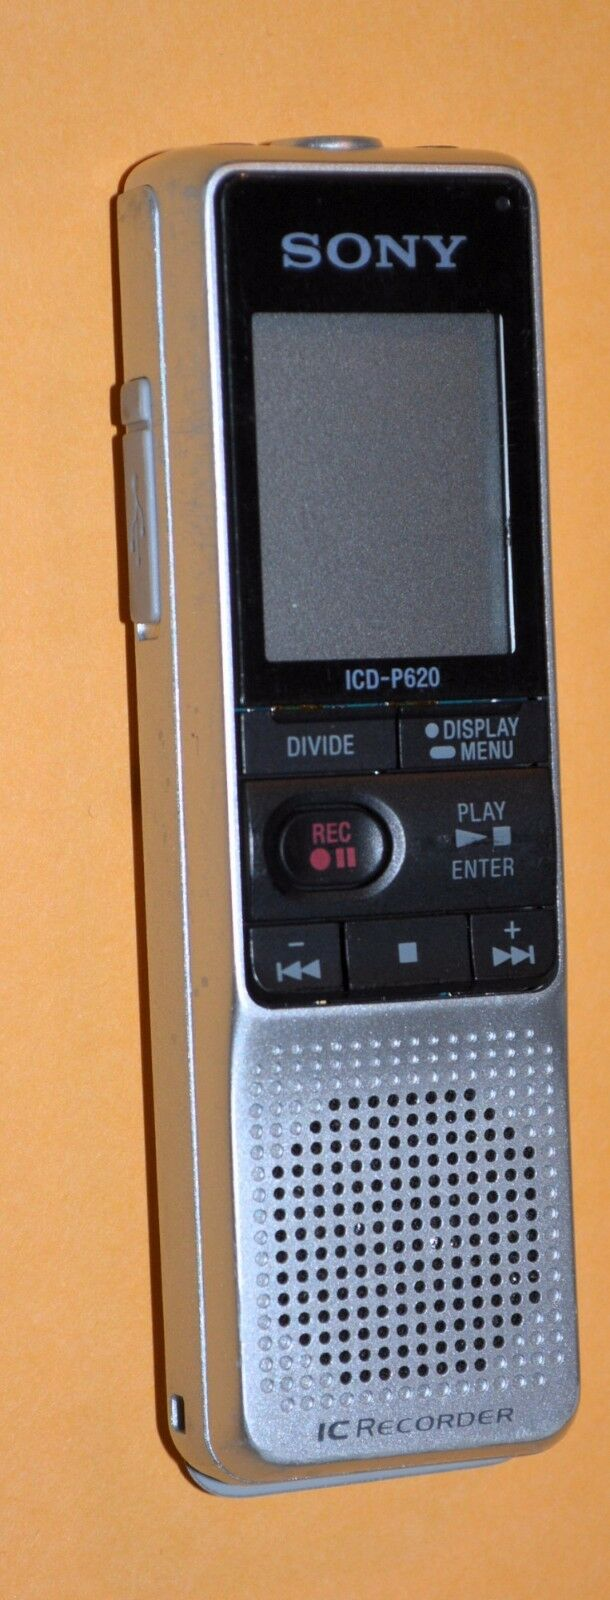 SONY ICD P620 Portable Digital Voice IC Recorder